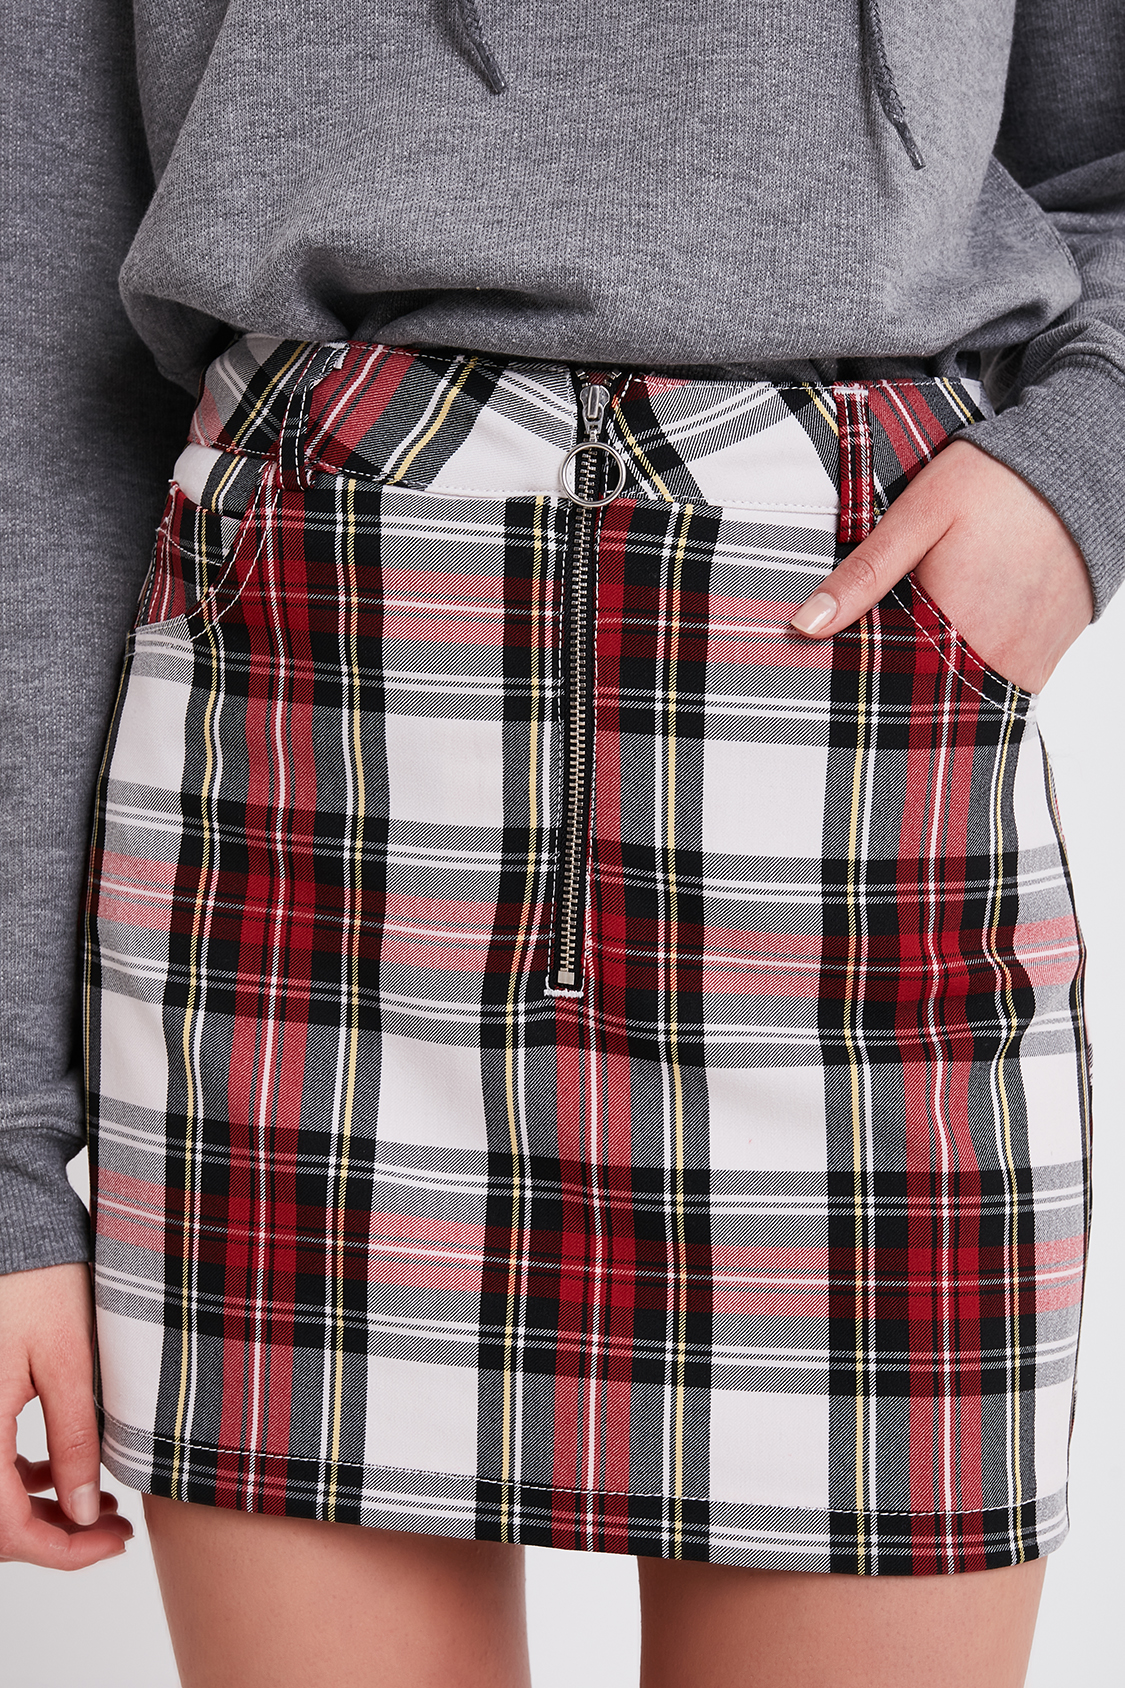 868f2e30a Checkered zip skirt. Skip to the beginning of the images gallery